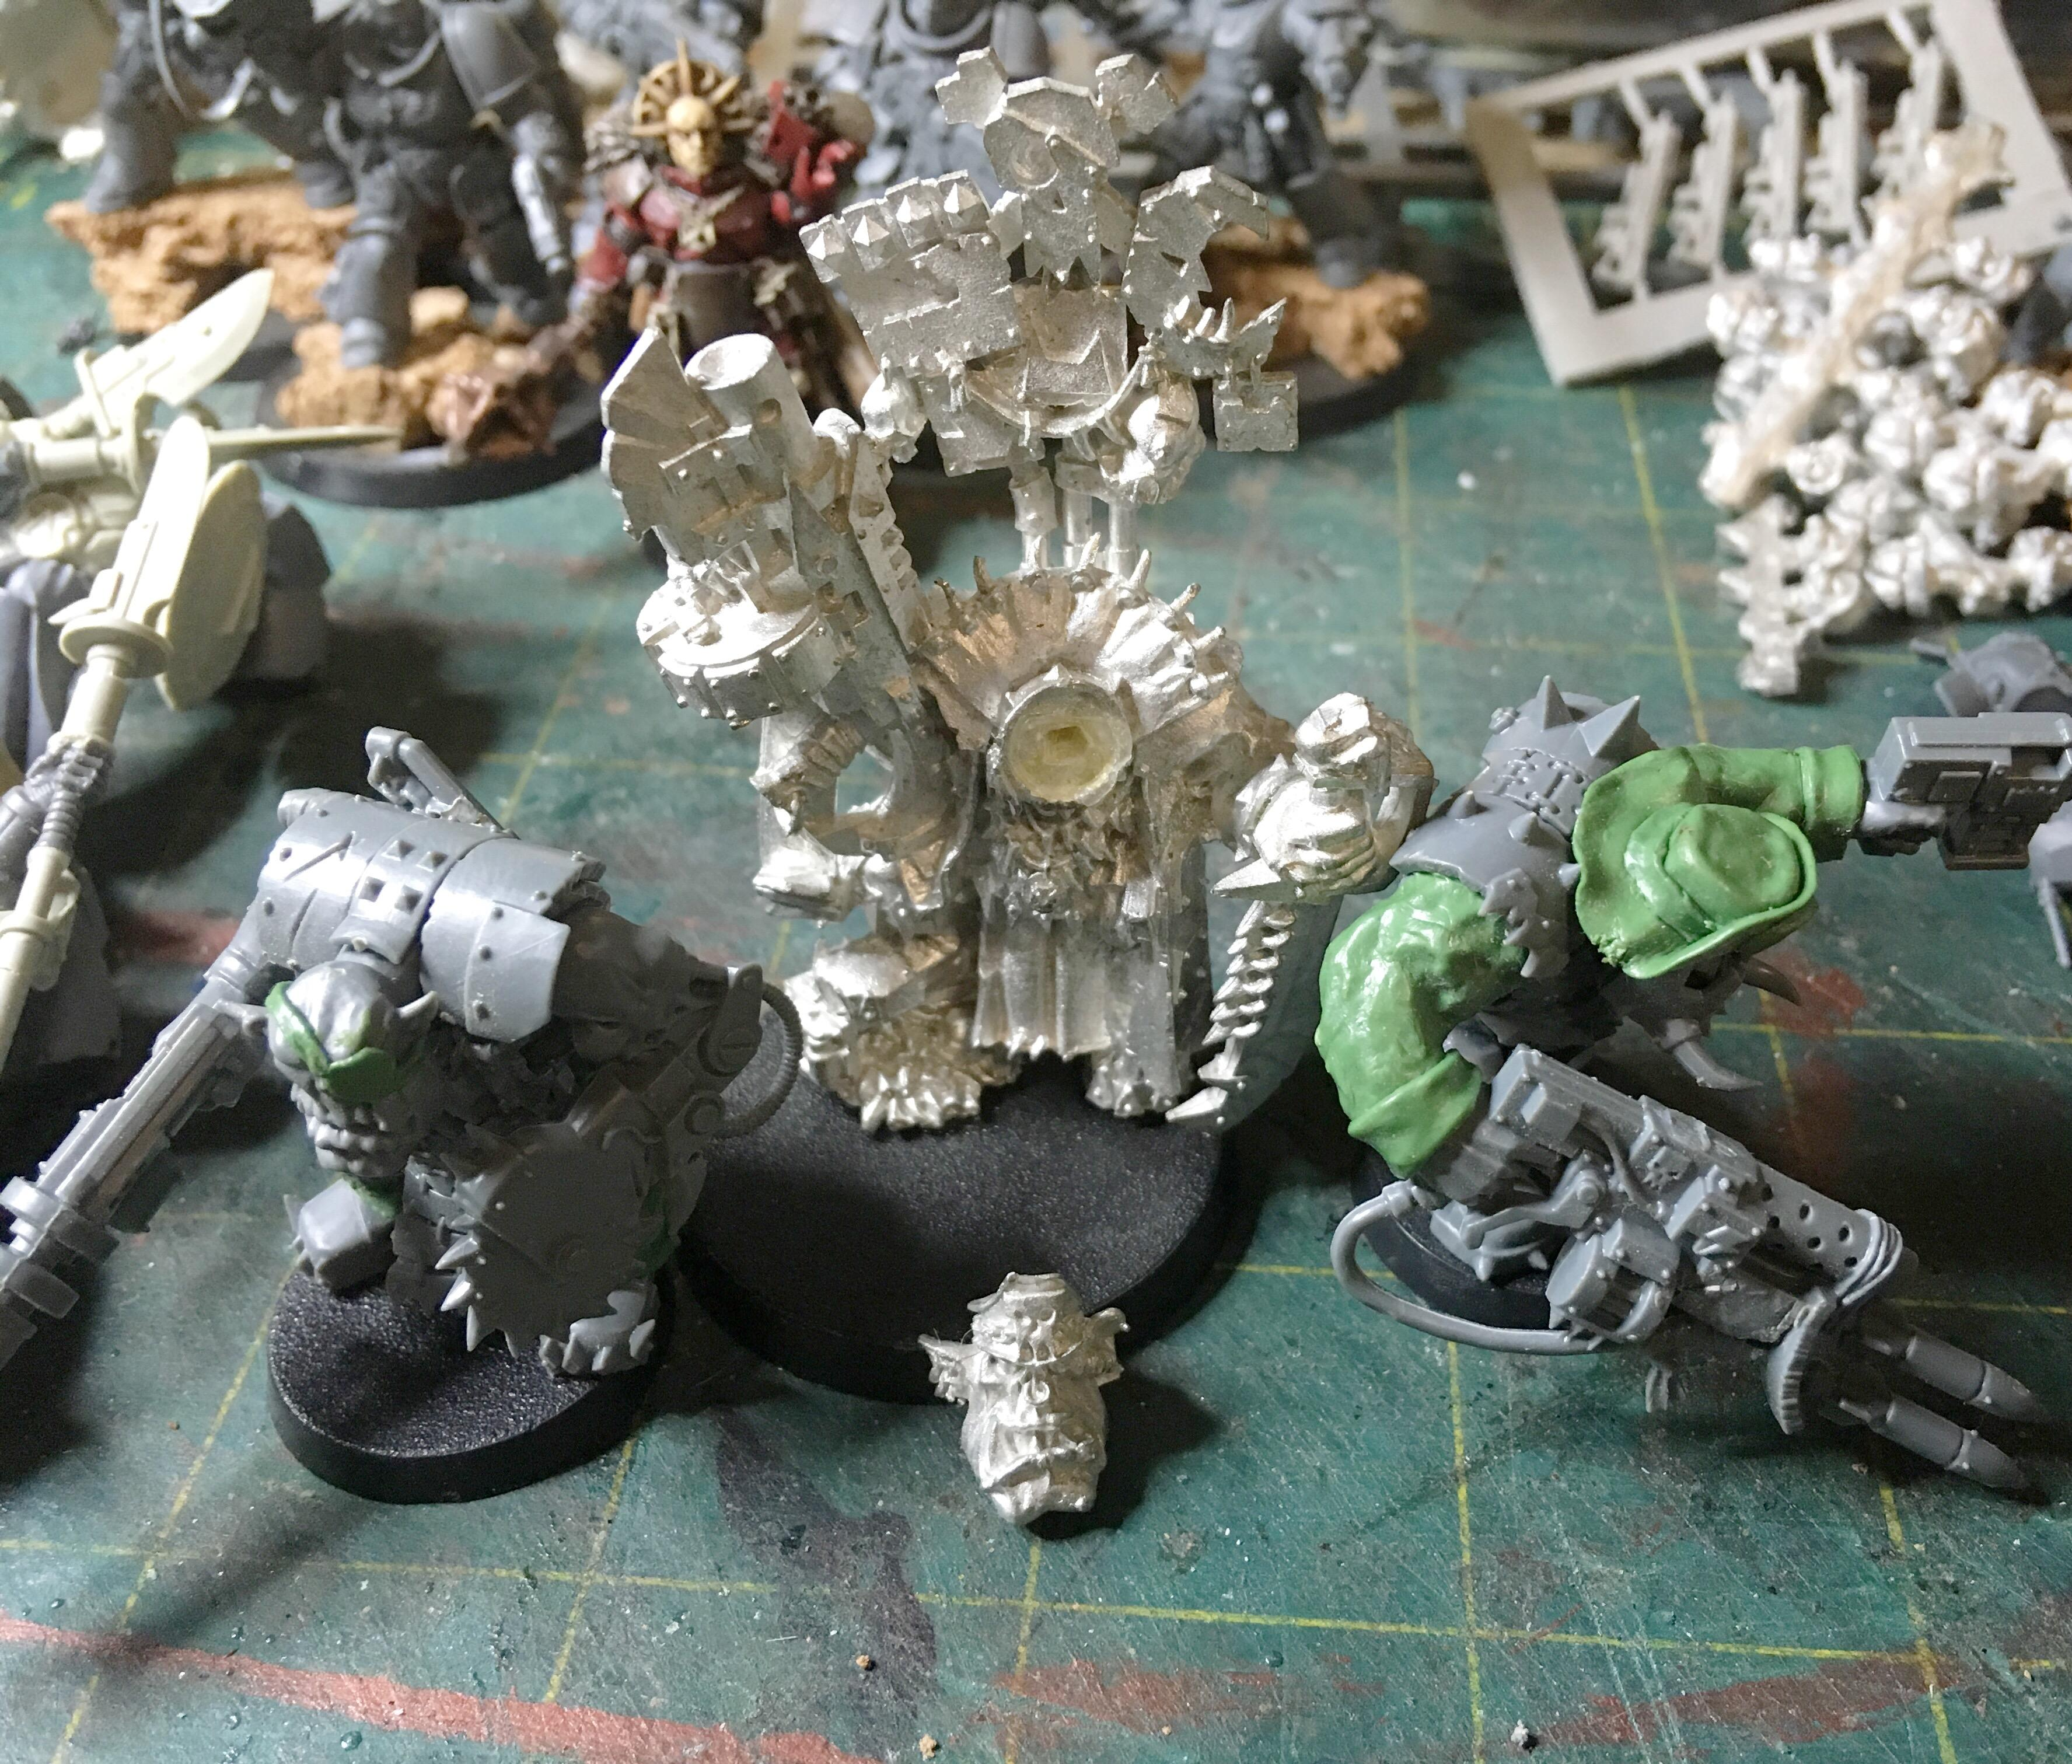 Then we have Pirate Orks, enough said..